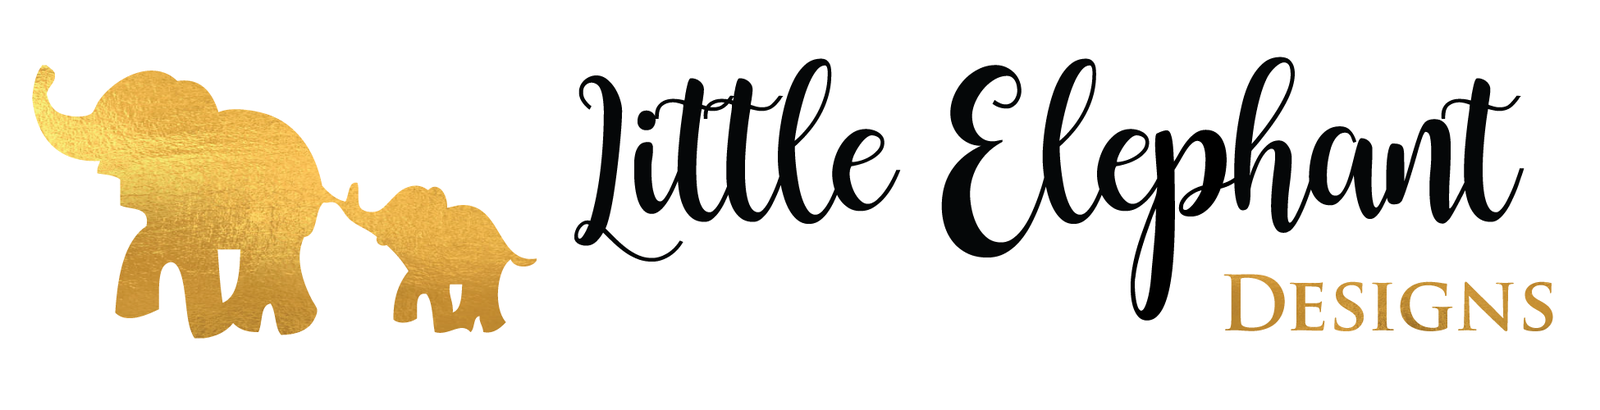 Little Elephant Designs